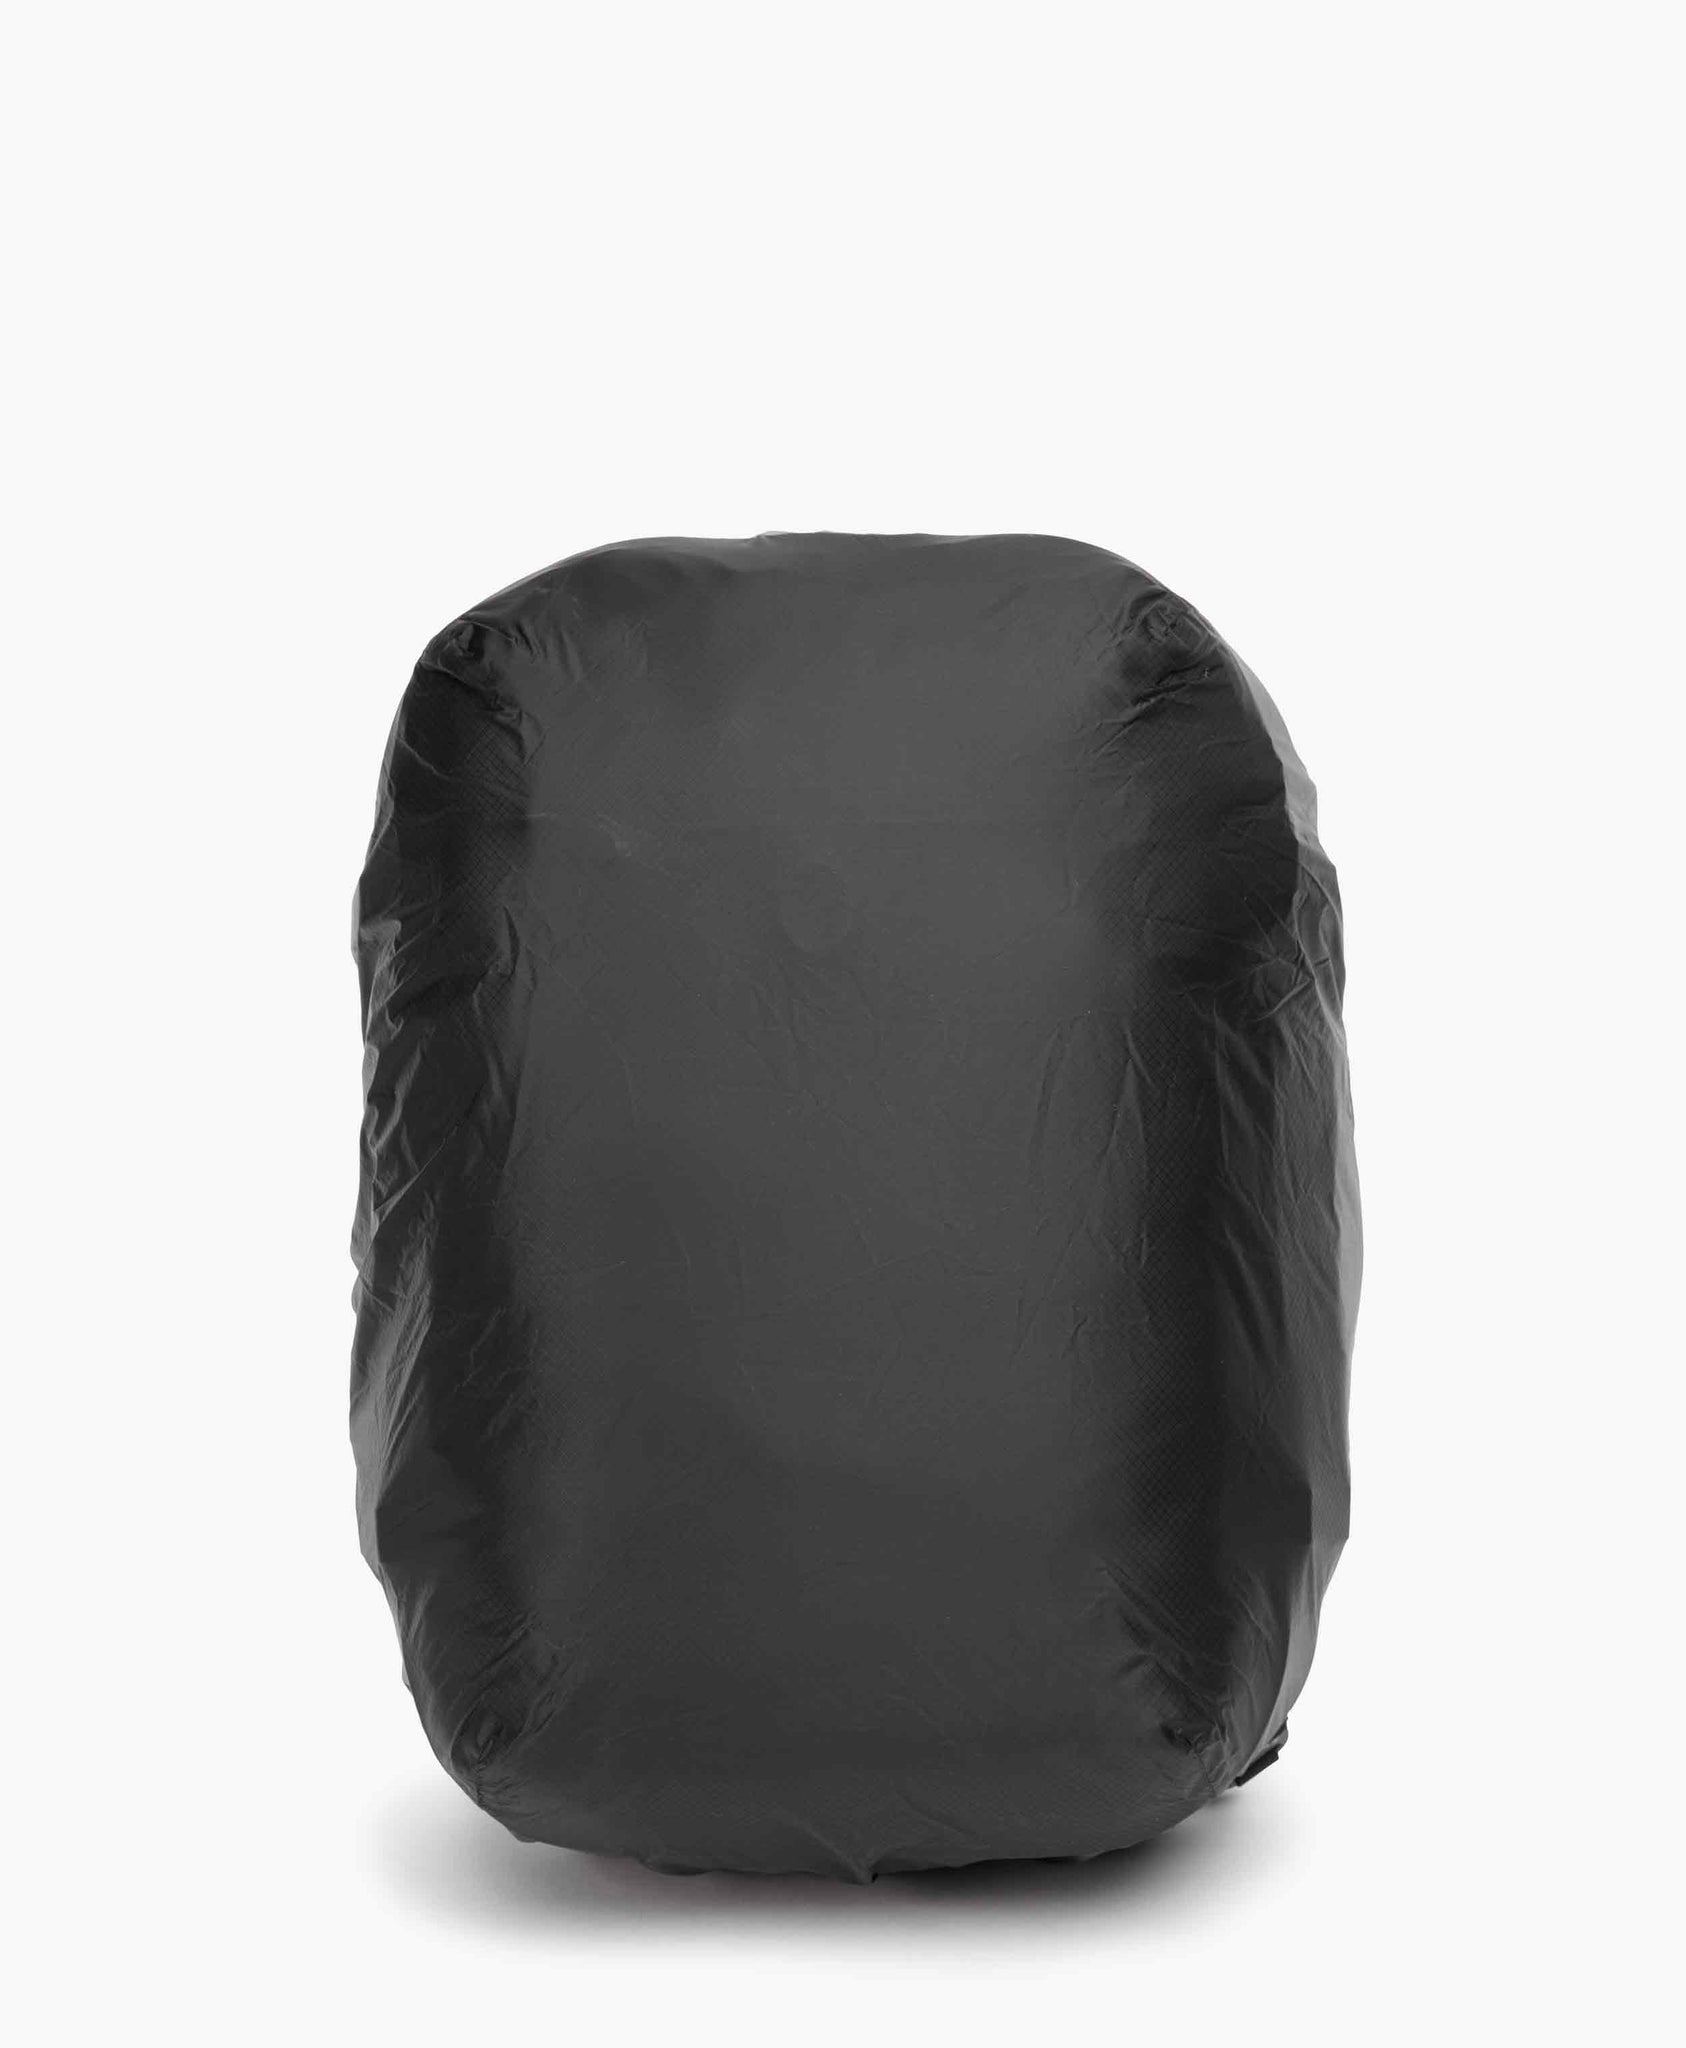 product/ The weatherproof cover for the Setout Divide and Setout Backpack 35L